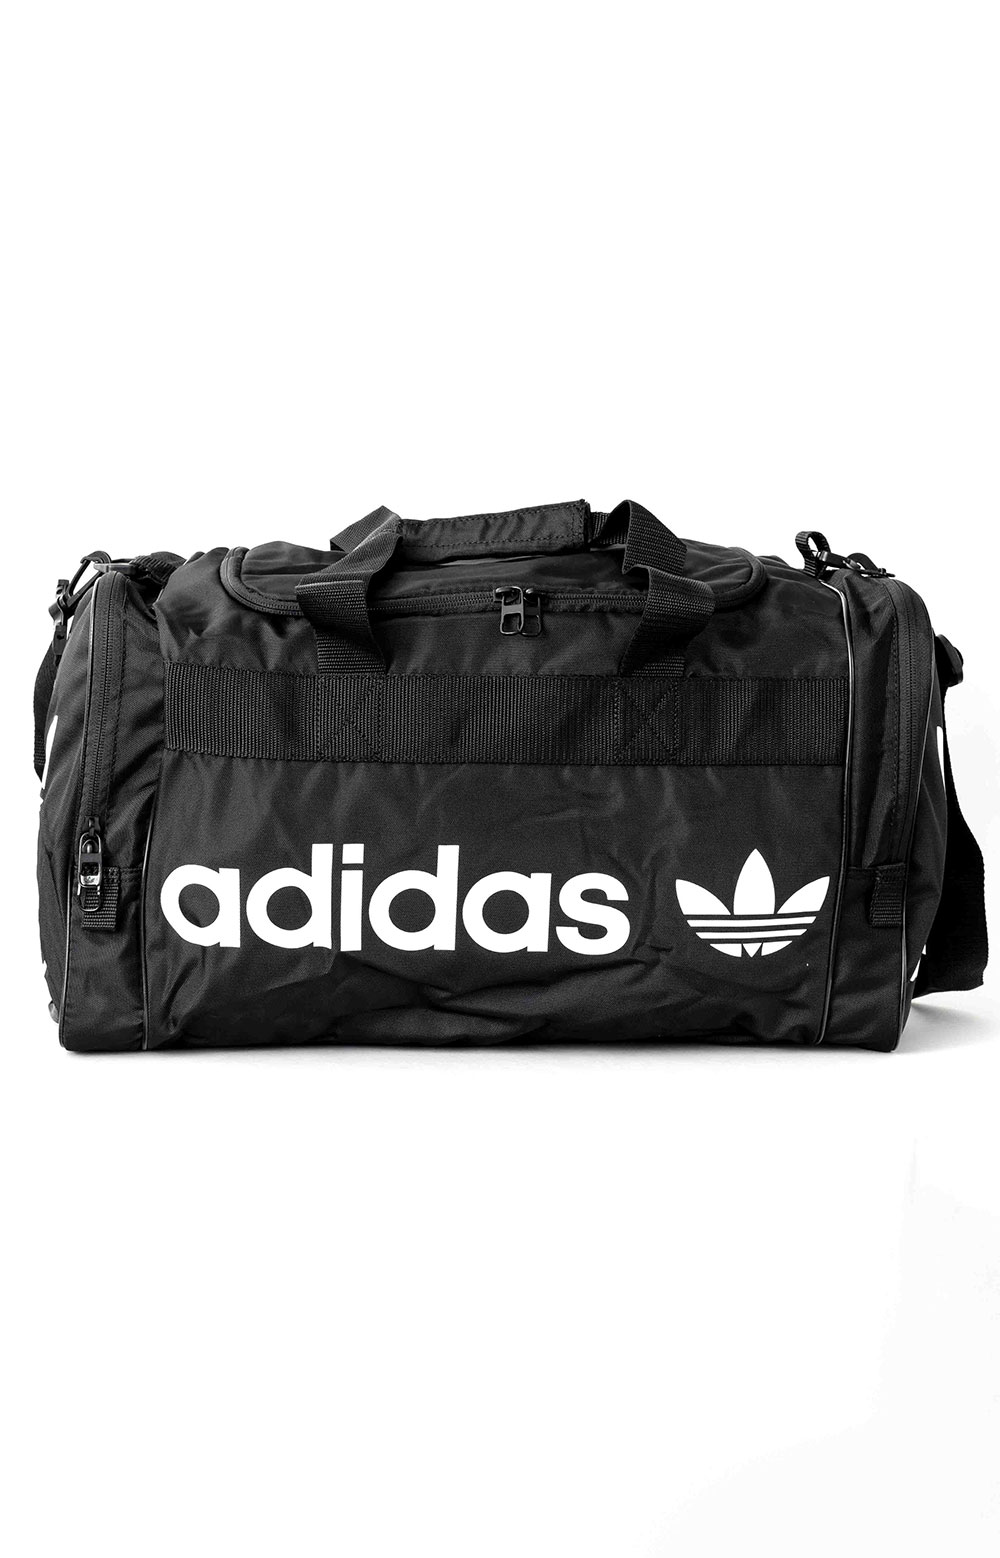 Santiago II Duffel Bag - Black/White